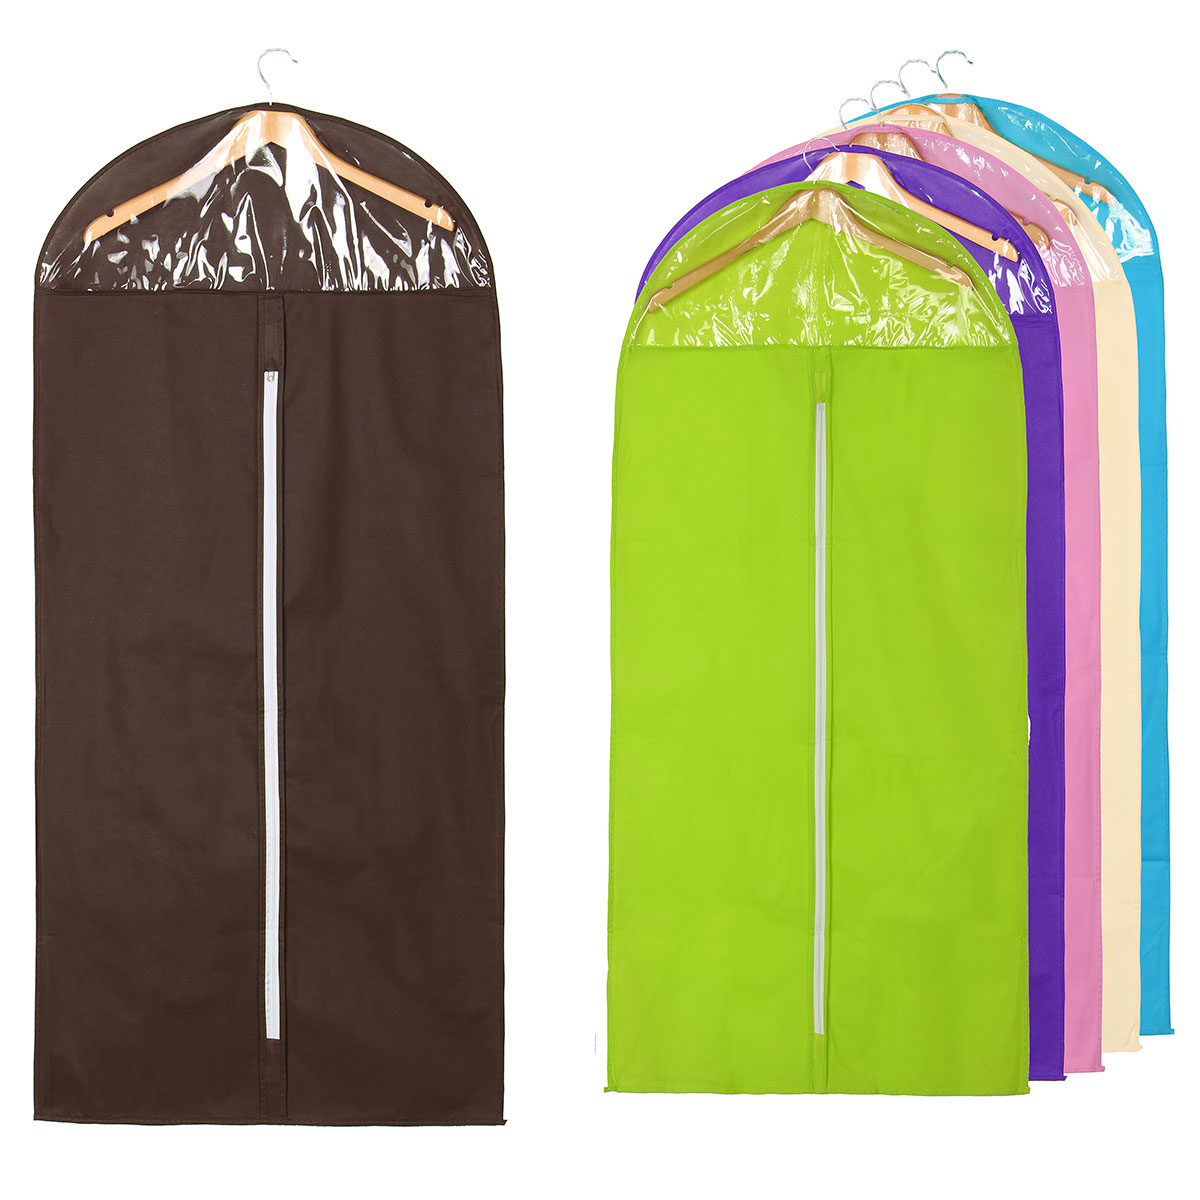 "Garment Bag Flodable Storage Covers Full Zipper Suit Bag with Clear Window Pack 23.6""x51.1"" For Luggage, Dresses, Storage or Travel ,Purple color"